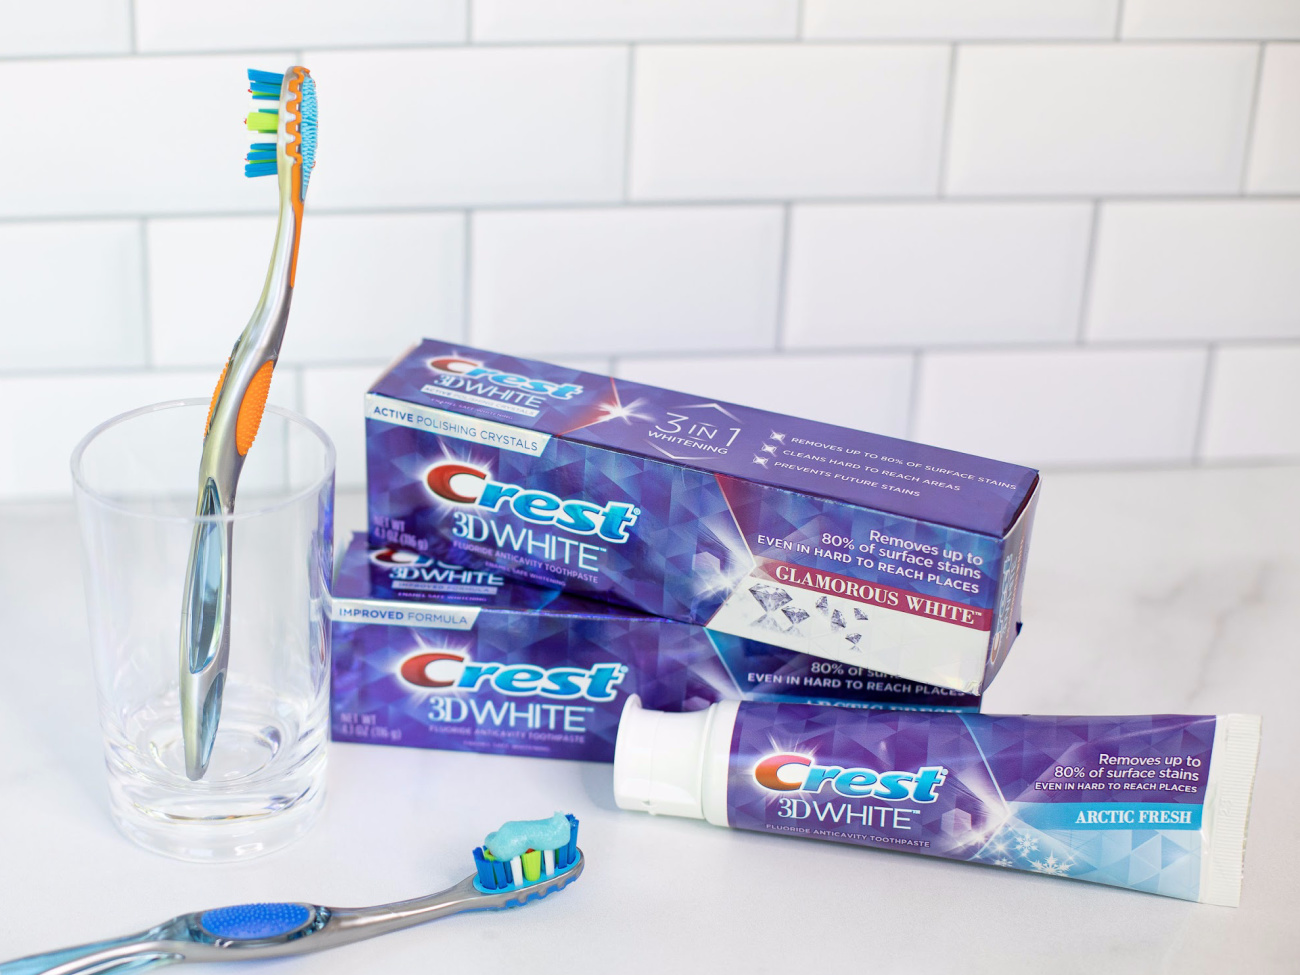 It's Finally Time To Show Your Gorgeous Smiles - Take The Opportunity To Grab A Deal On Crest Toothpaste At Publix on I Heart Publix